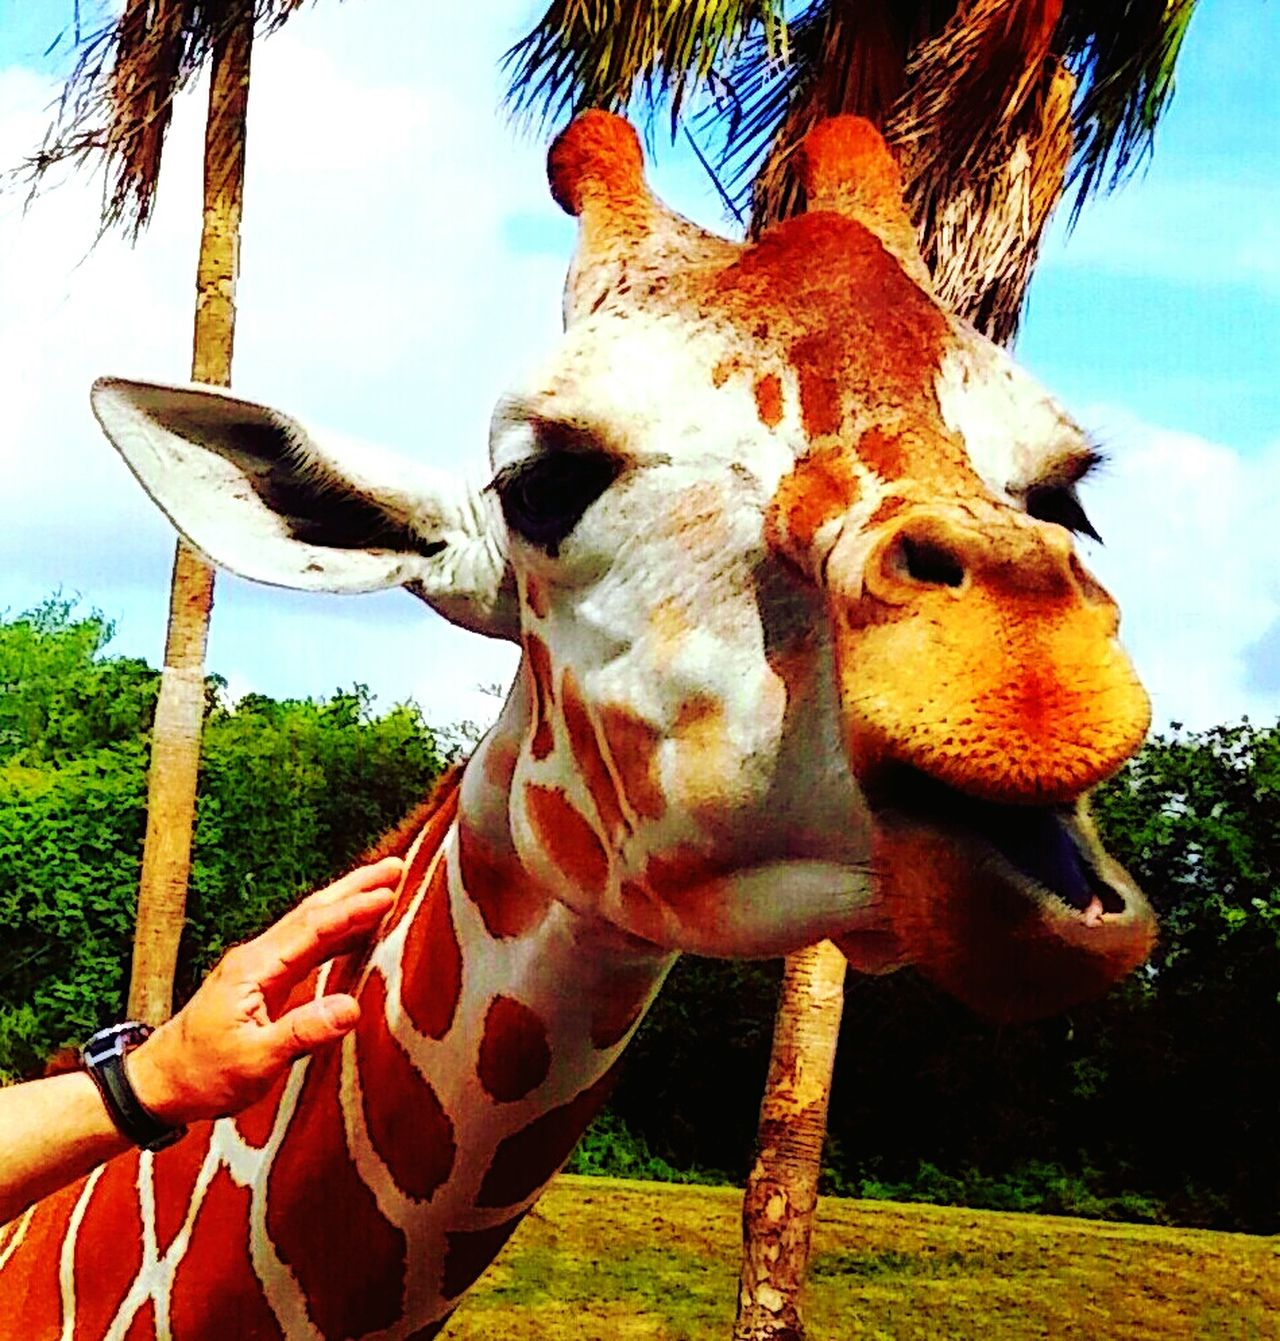 Close-up Giraffe♥ Dont Touch Me Goofy Face Taking Pictures Photo Op Animal Model Safari Animals Safari No People